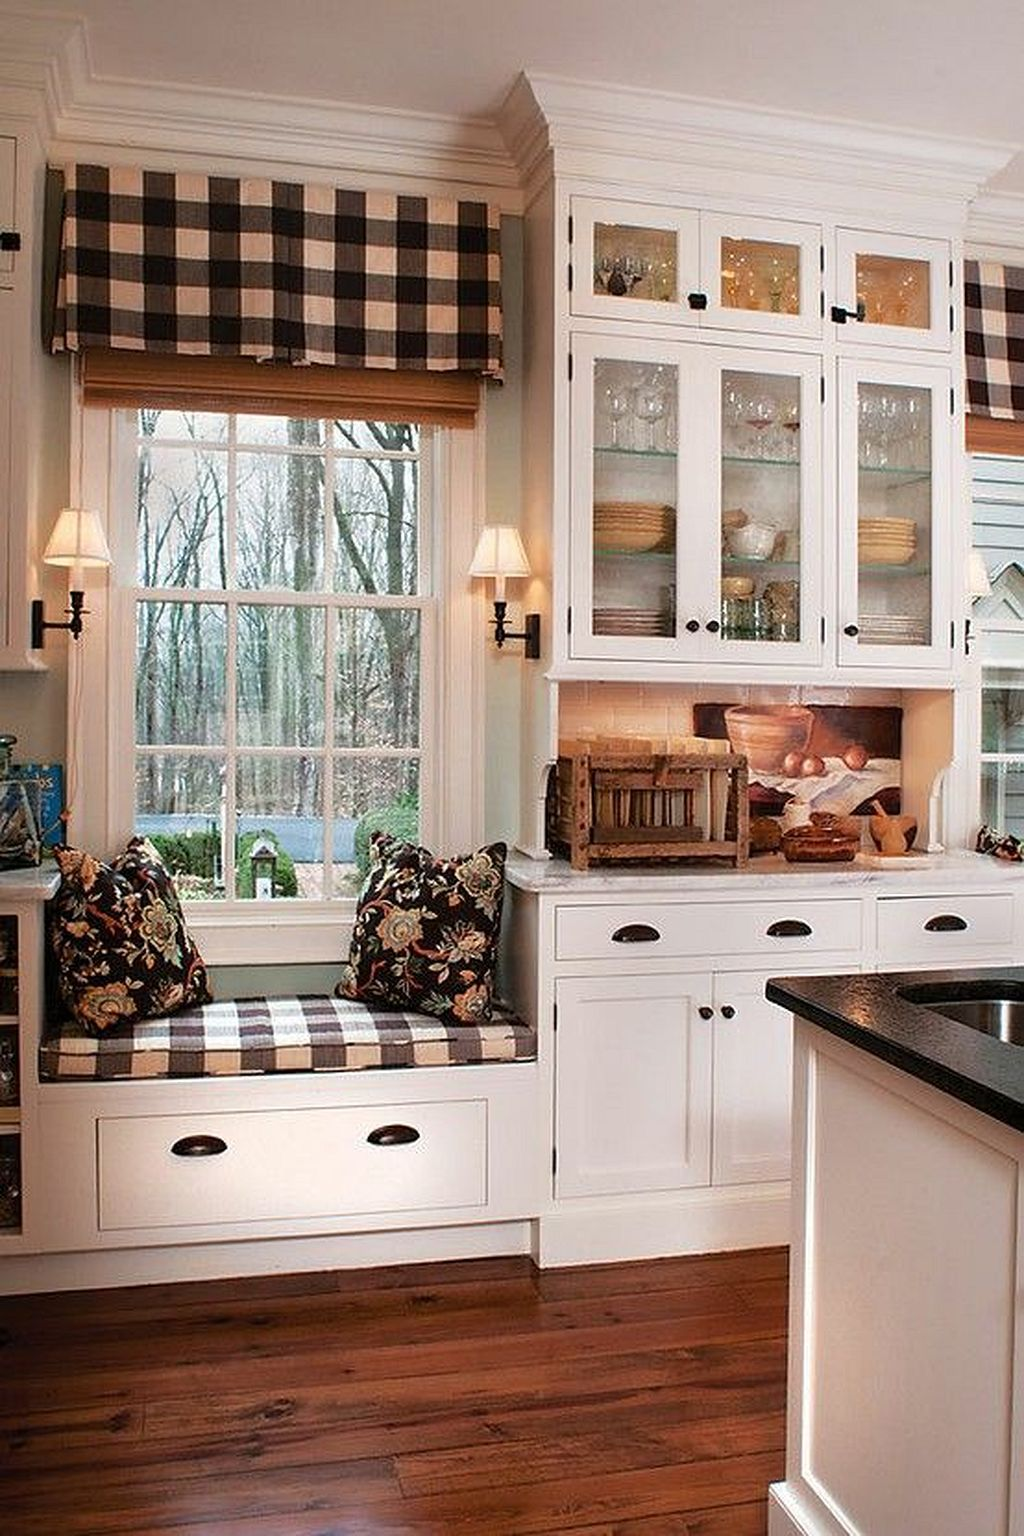 Cottage Style Kitchen Designs Brilliant 126 Farmhouse Style Kitchen Design Ideas  Farmhouse Style Kitchen Decorating Inspiration